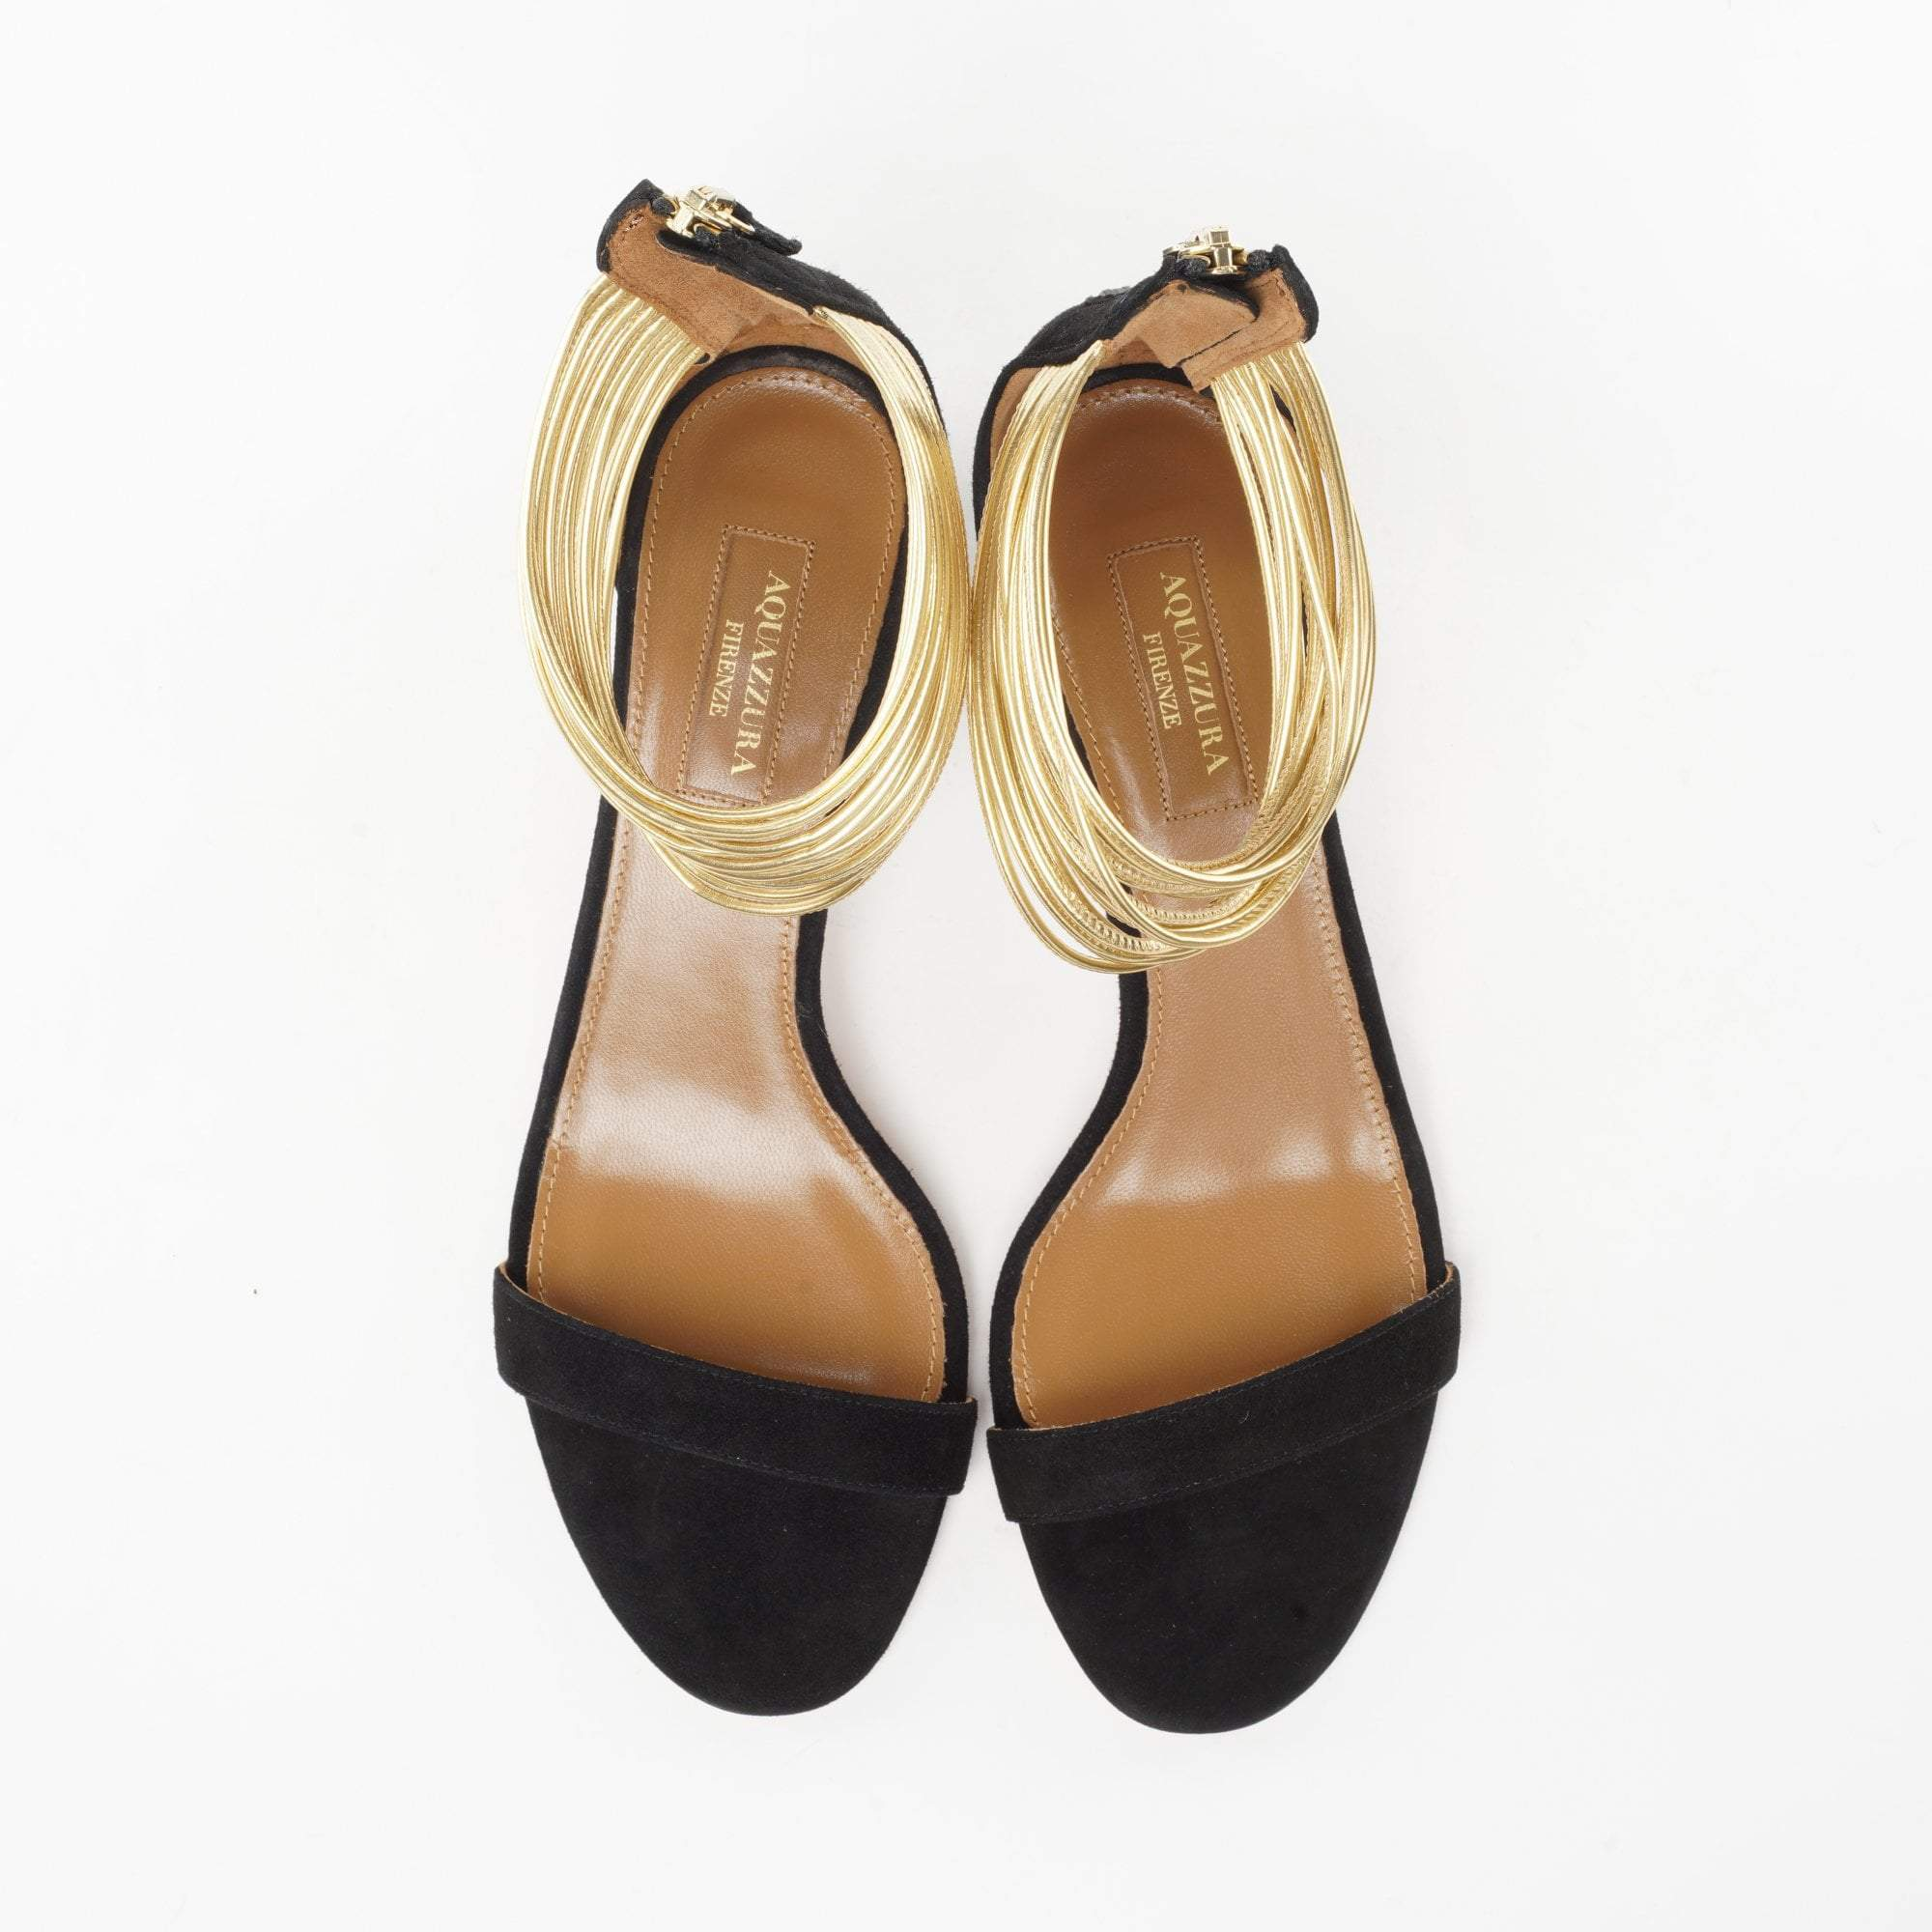 Aquazzura Spin-Me-Around Black Sandals